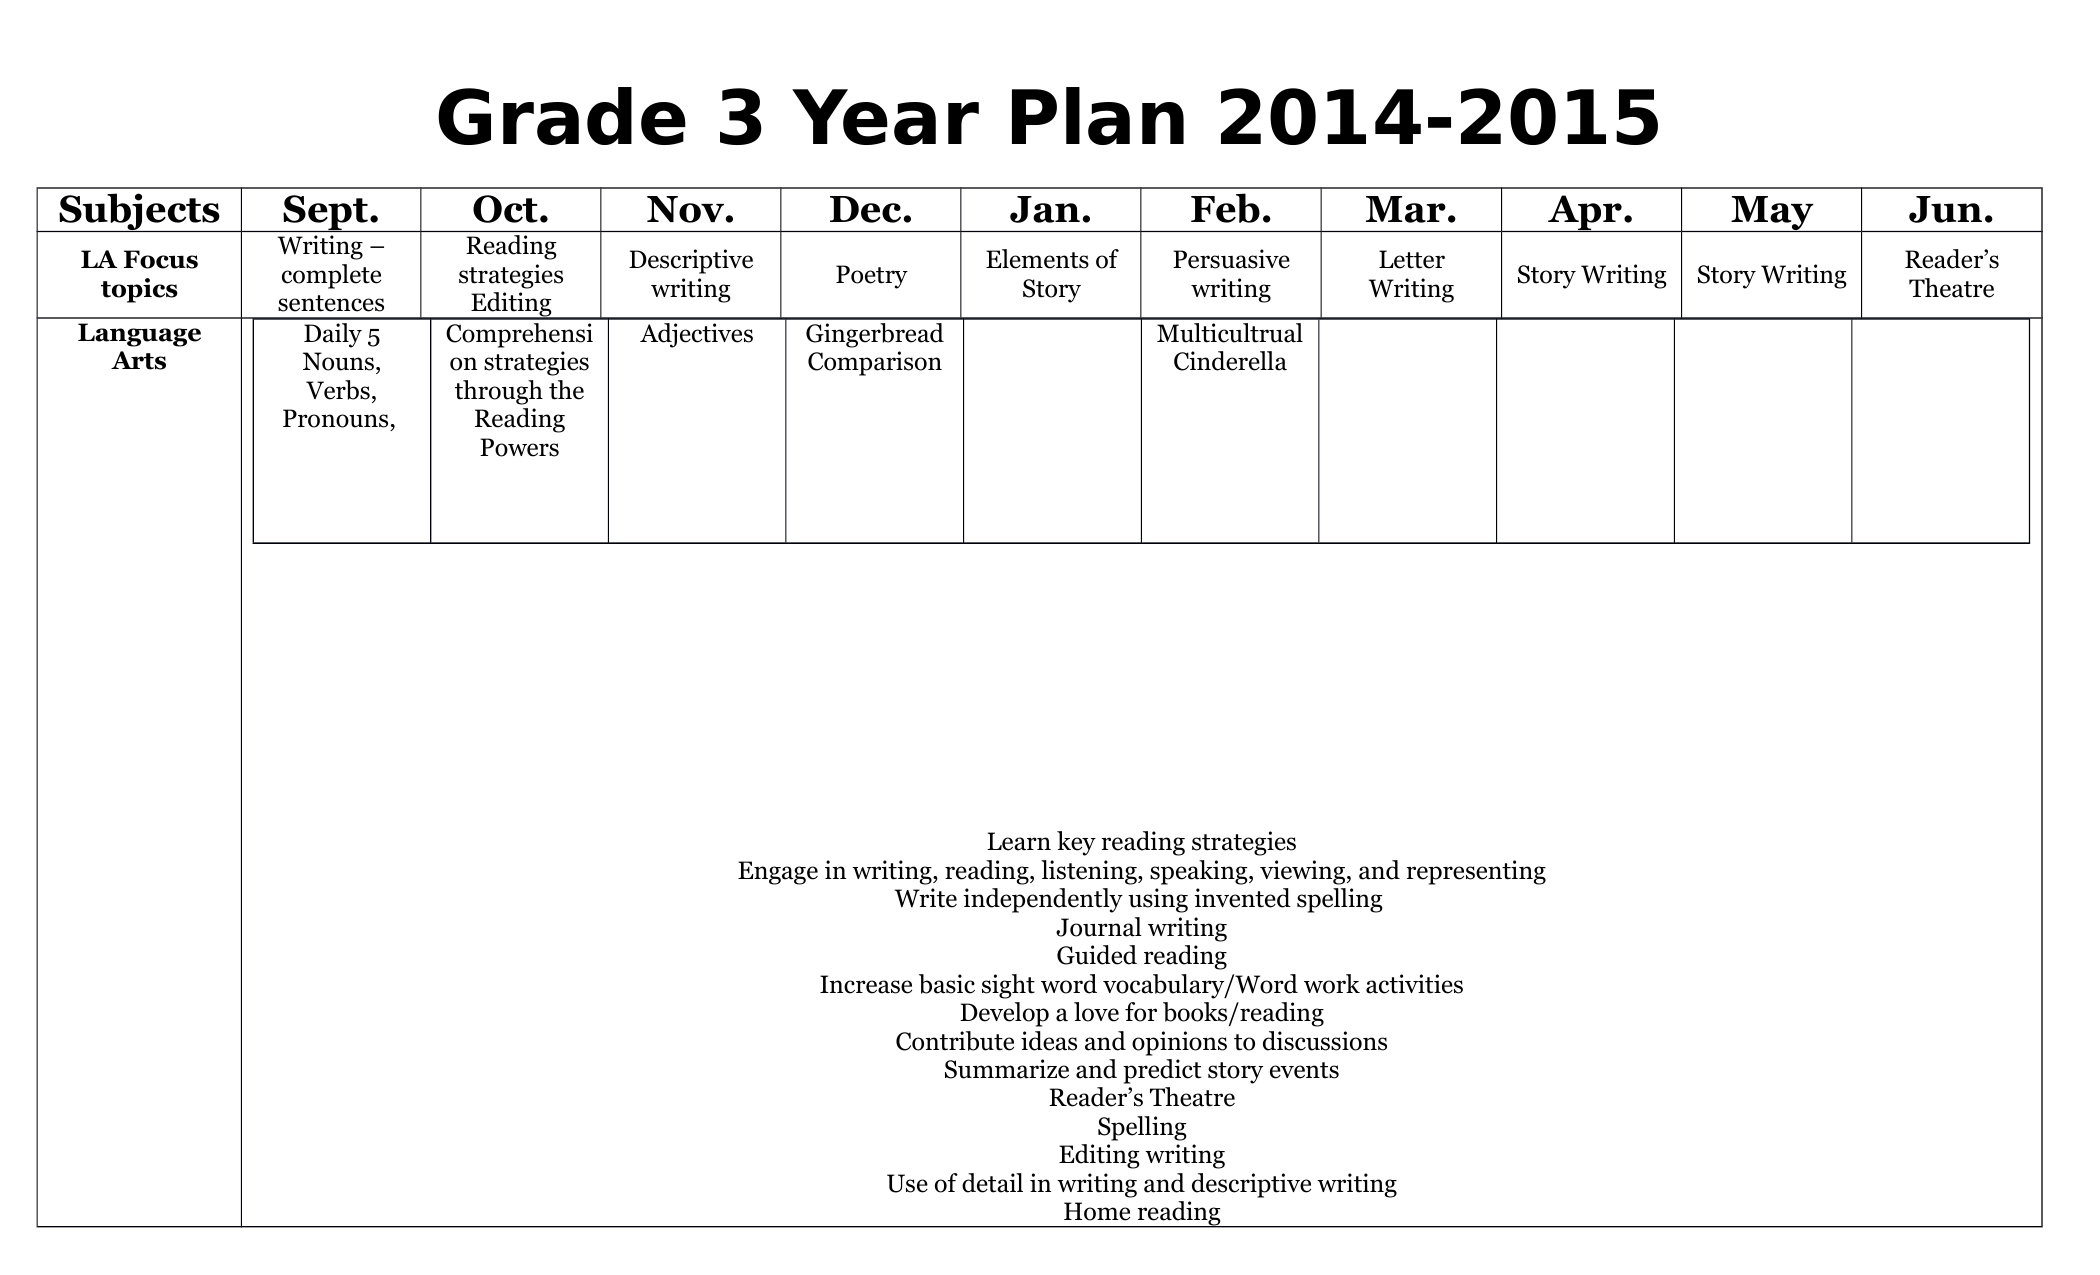 Long range plans for Grade 3 Resource Preview